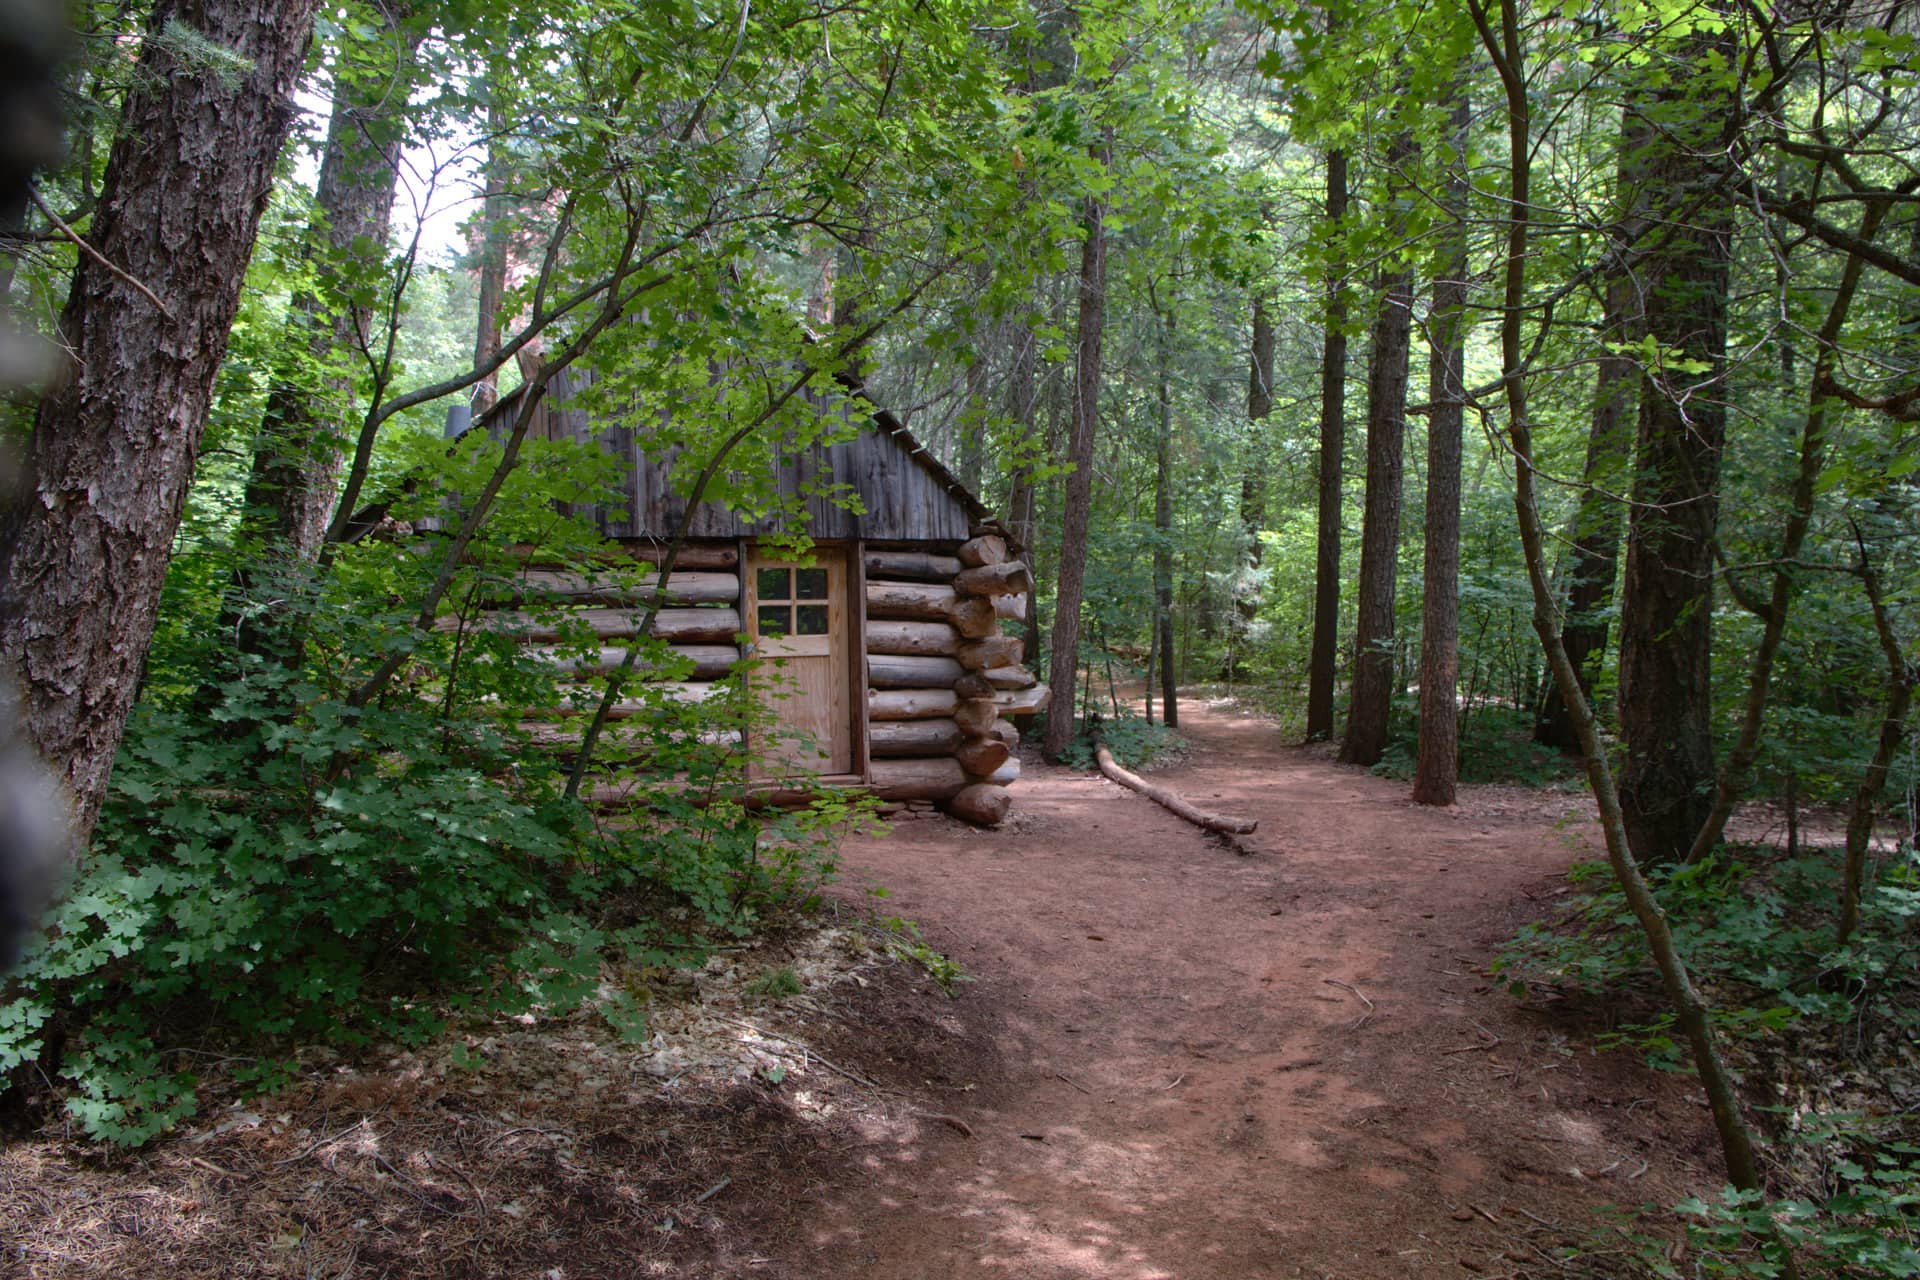 Fife Cabin on Taylor Creek Trail in Zion National Park